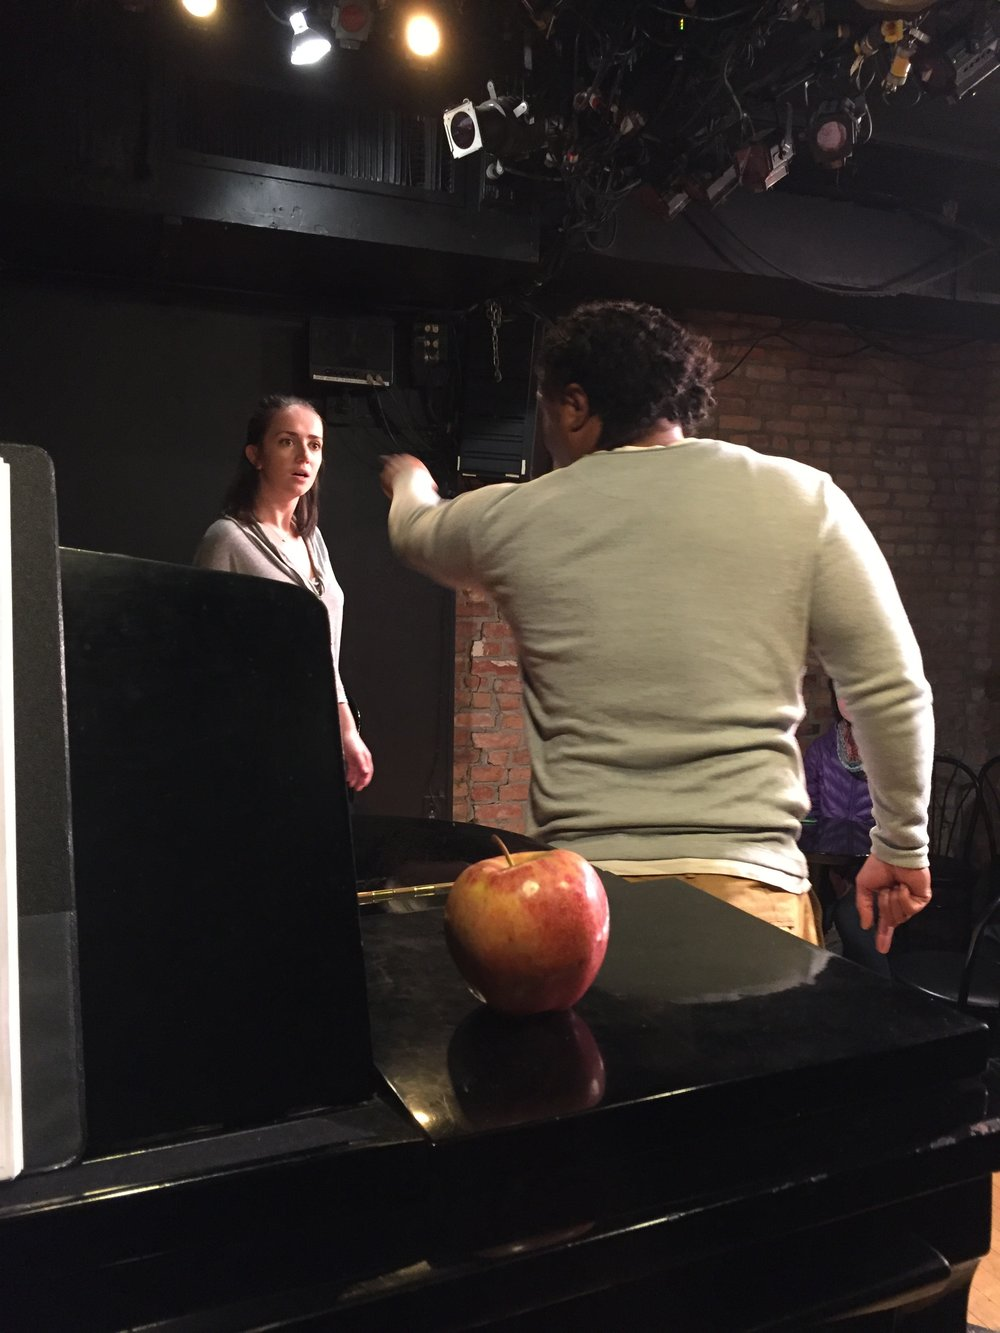 Missy Michael Jamieson as Eve, Forest Van Dyke as Adam, and an Apple during the tech rehearsal